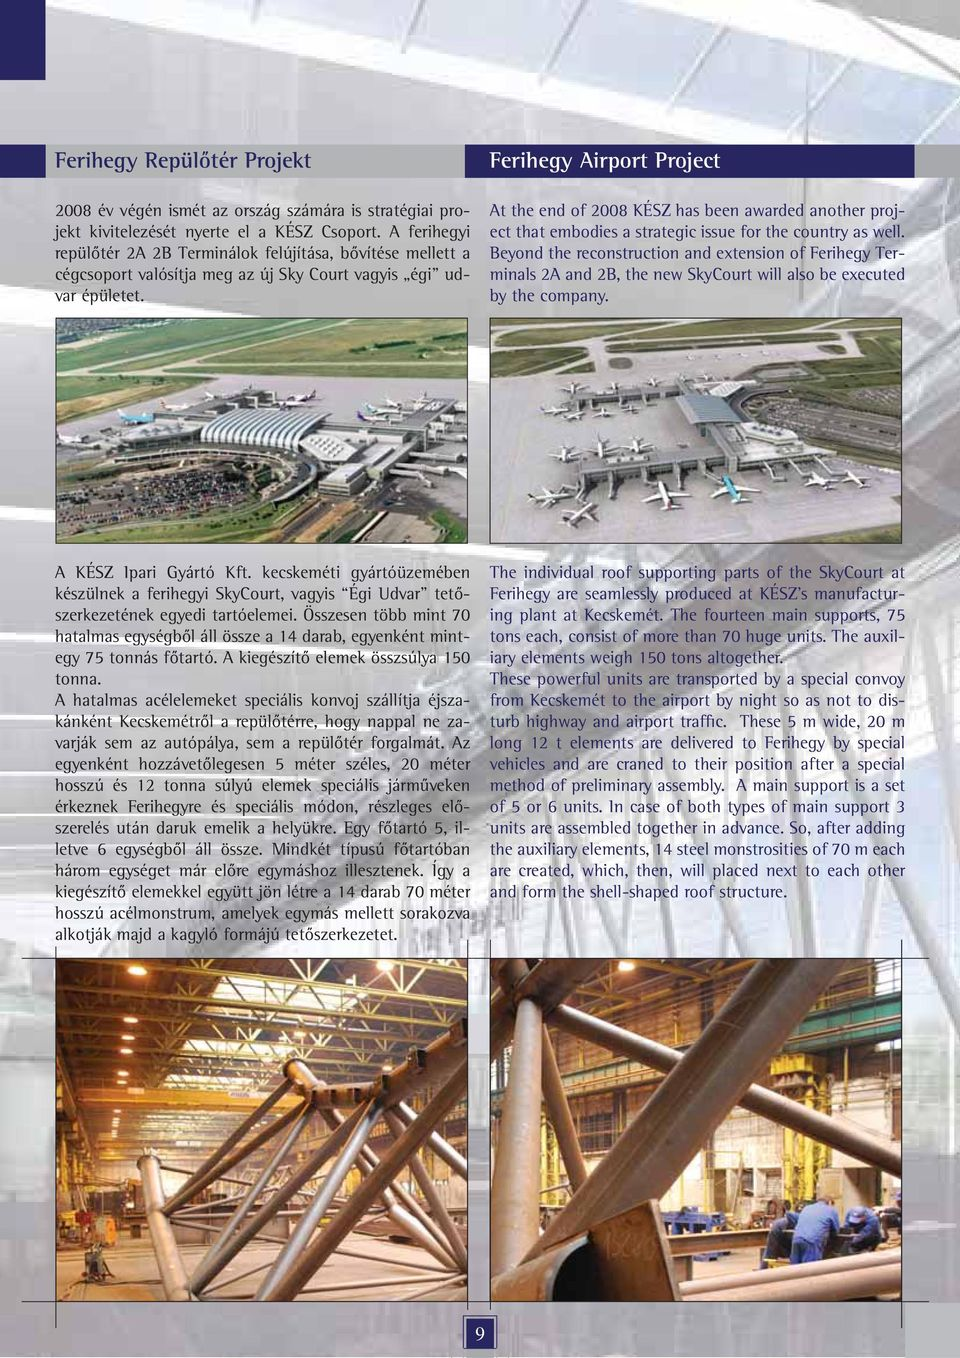 Ferihegy Airport Project At the end of 2008 KÉSZ has been awarded another project that embodies a strategic issue for the country as well.